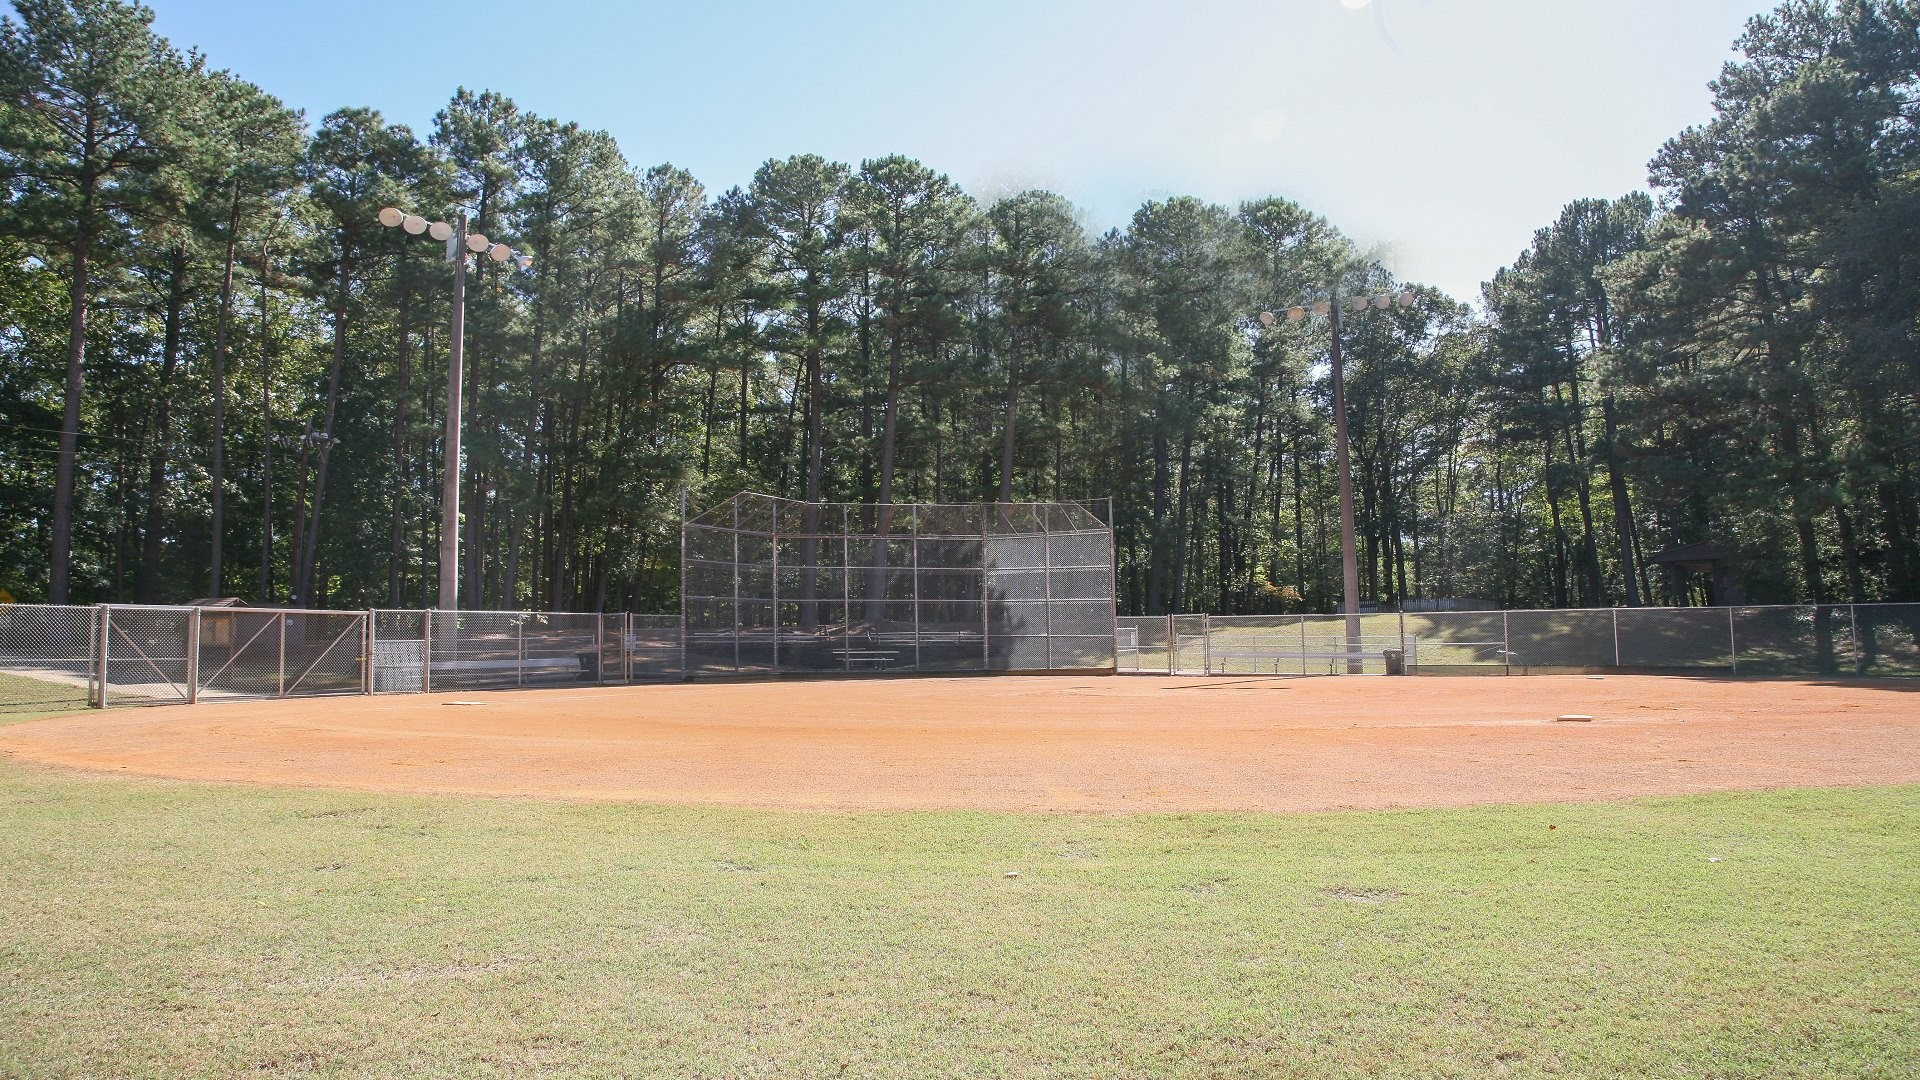 North Hills Park youth baseball field including diamond, benches and fencing.